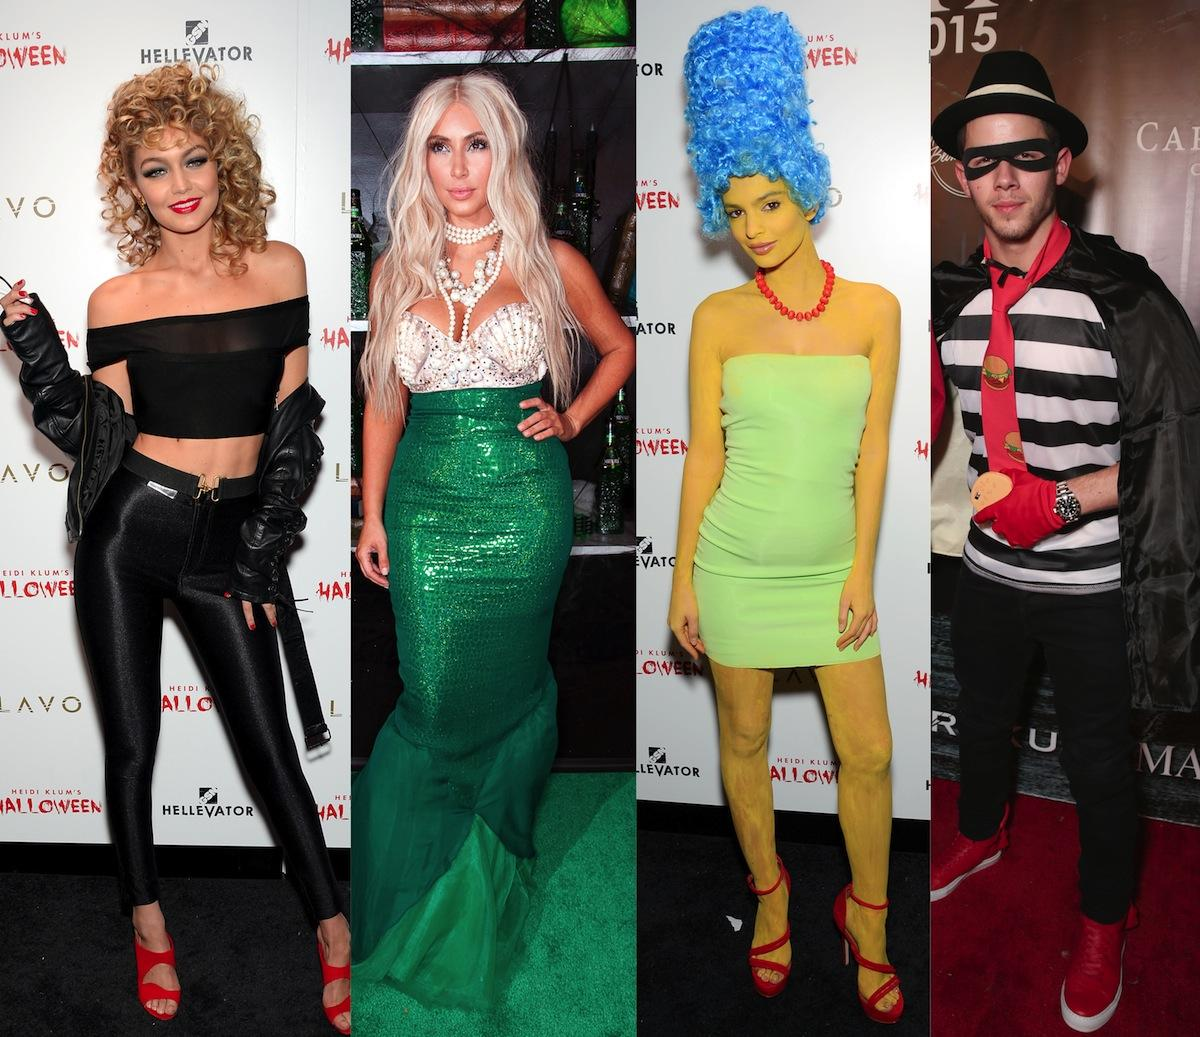 halloween 2016 costume ideas inspiredcelebrities: photos of